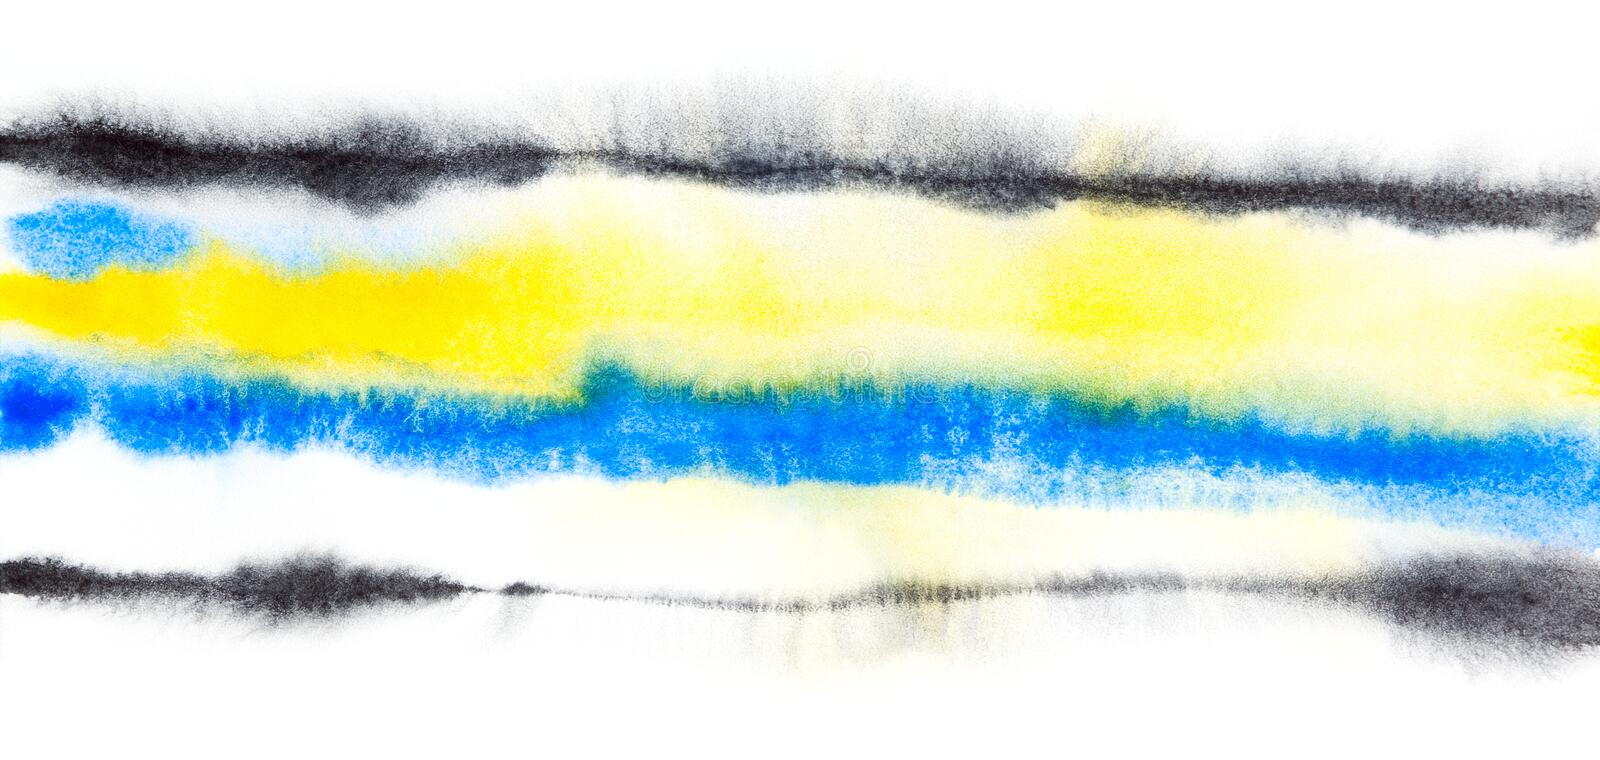 Fond abstrait de noir bleu de jaune d'aquarelle illustration stock